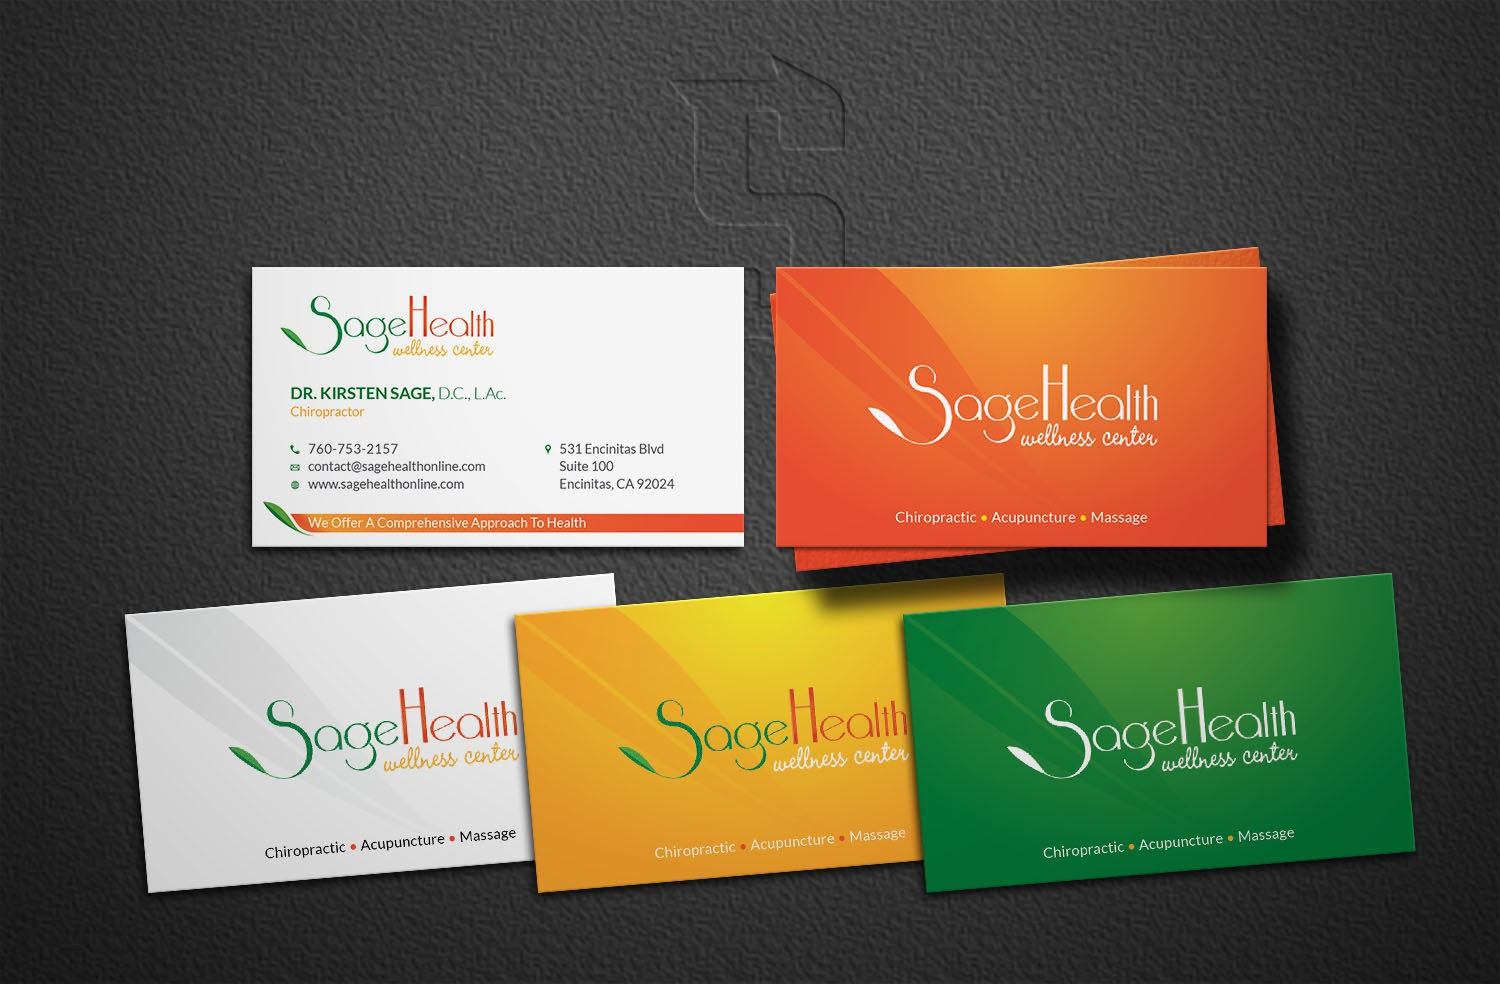 Business Cards for a Multidisiplinary Wellness Center in California